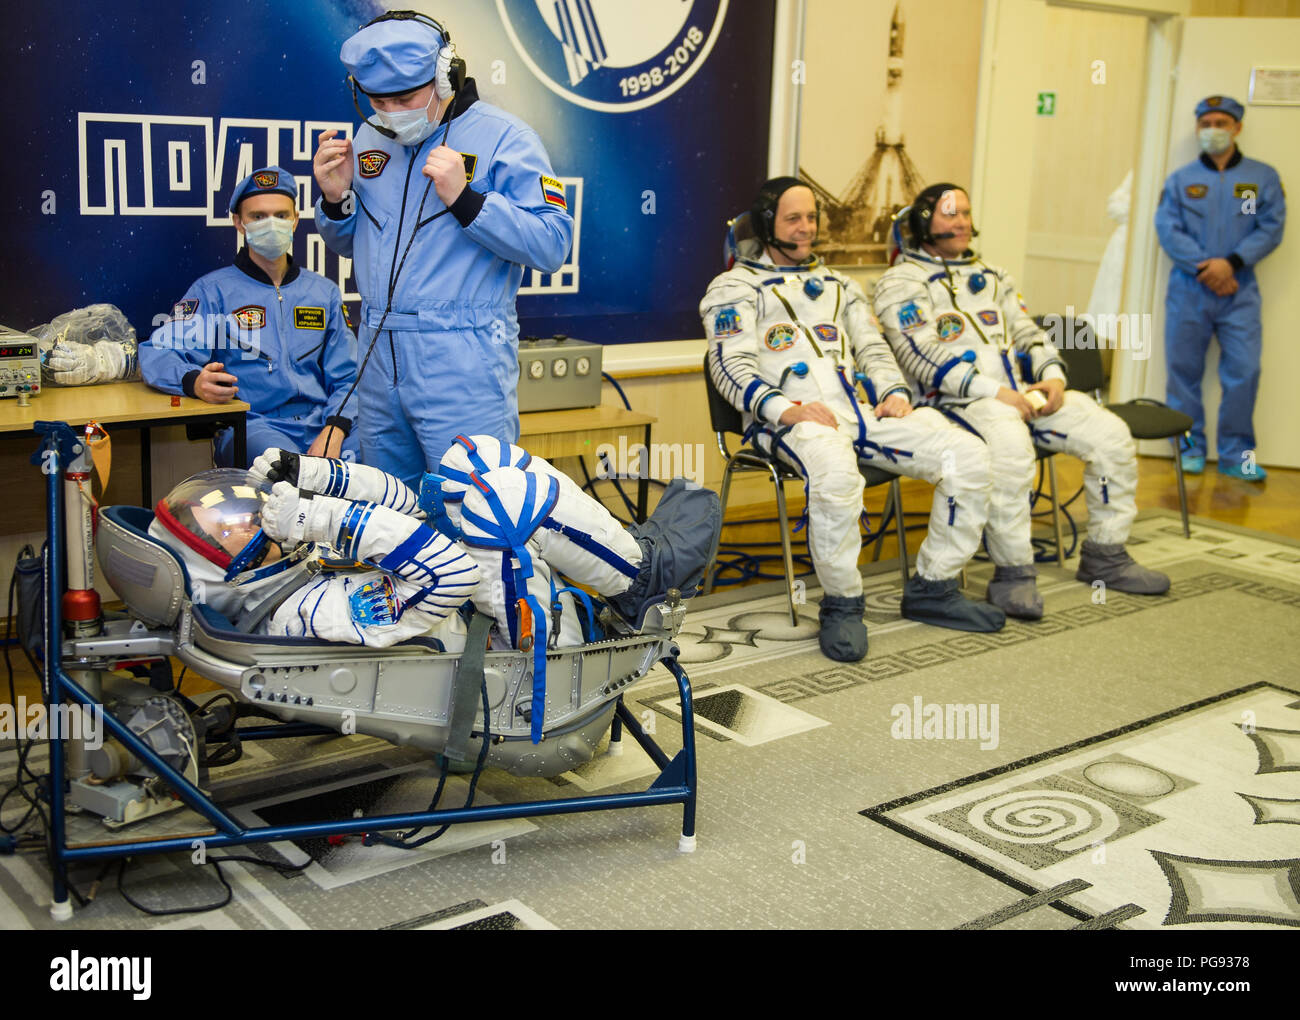 Expedition 55 flight engineer Drew Feustel of NASA prepares to have his Russian Sokol suit pressure checked in preparation for launch aboard the Soyuz MS-08 spacecraft, Wednesday, March 21, 2018 at the Baikonur Cosmodrome  Kazakhstan. Feustel, Soyuz Commander Oleg Artemyev of Roscosmos, and flight engineer Ricky Arnold of NASA launched aboard the Soyuz MS-08 spacecraft at 1:44 p.m. Eastern time (11:44 p.m. Baikonur time) on March 21 to begin their journey to the International Space Station. - Stock Image